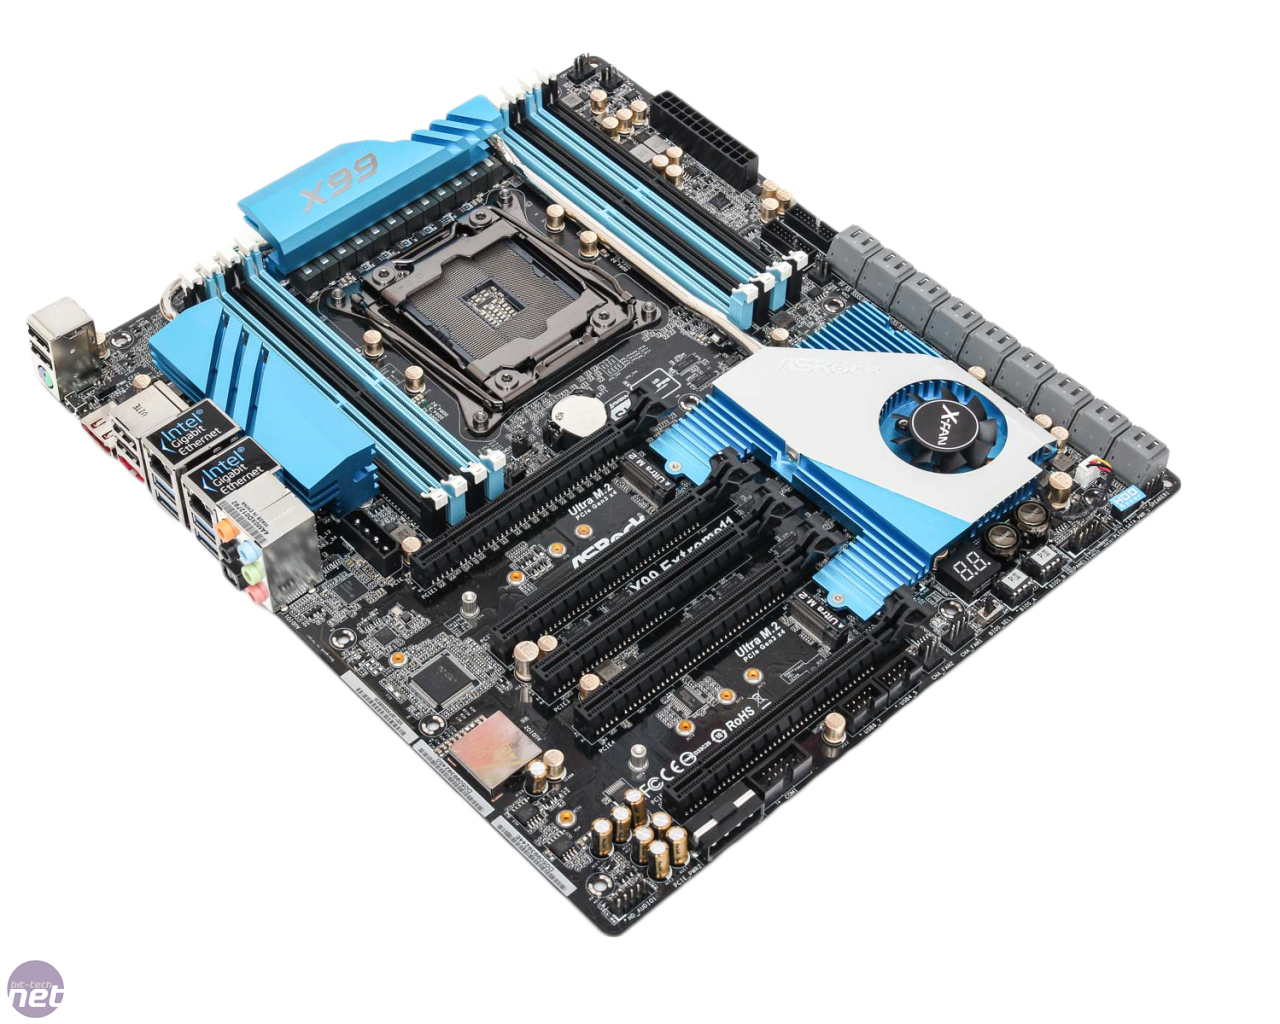 ASRock X99 Extreme 11 Review | bit-tech net